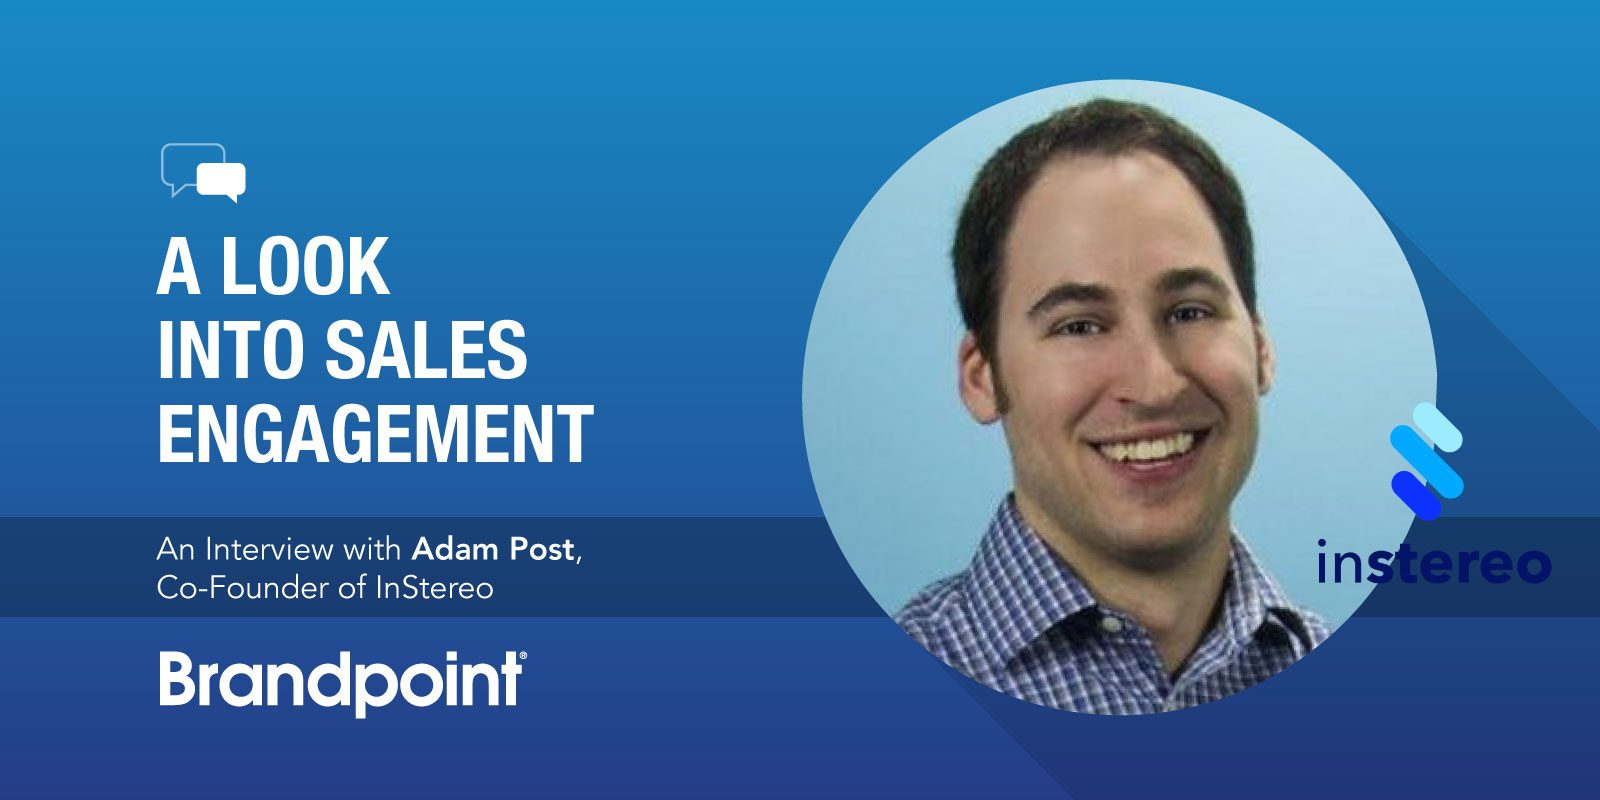 an interview with adam post